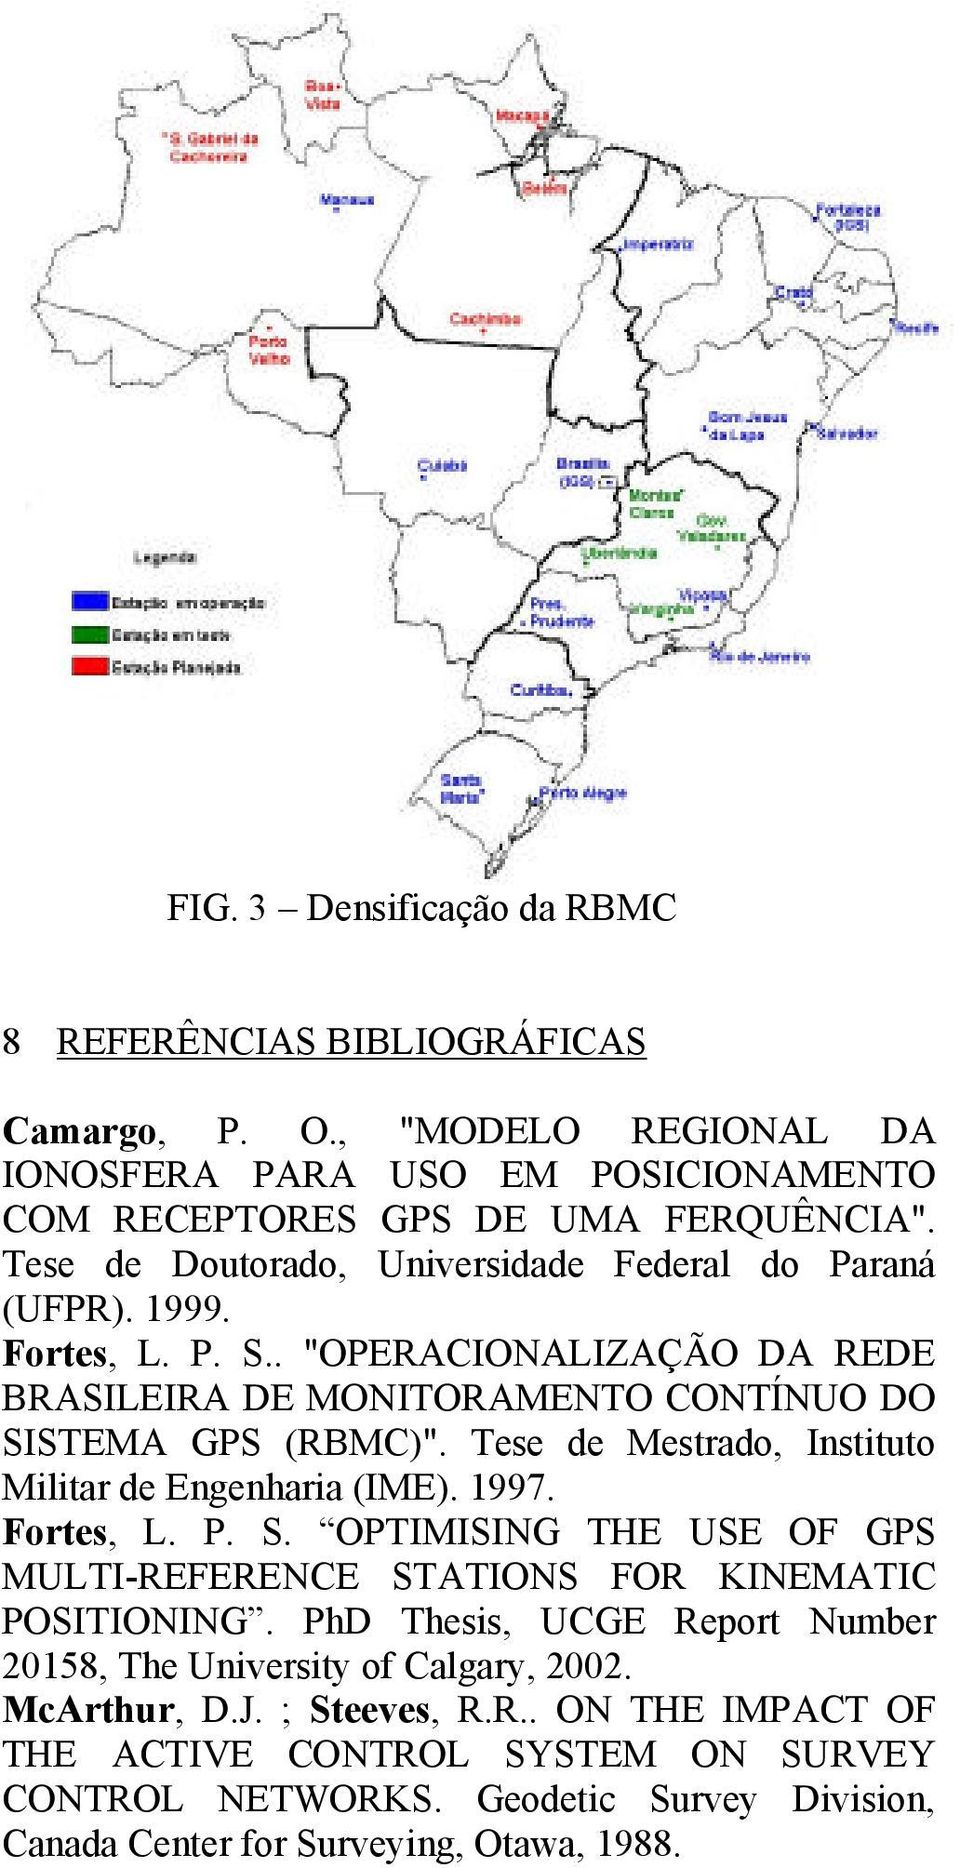 Tese de Mestrado, Instituto Militar de Engenharia (IME). 1997. Fortes, L. P. S. OPTIMISING THE USE OF GPS MULTI-REFERENCE STATIONS FOR KINEMATIC POSITIONING.